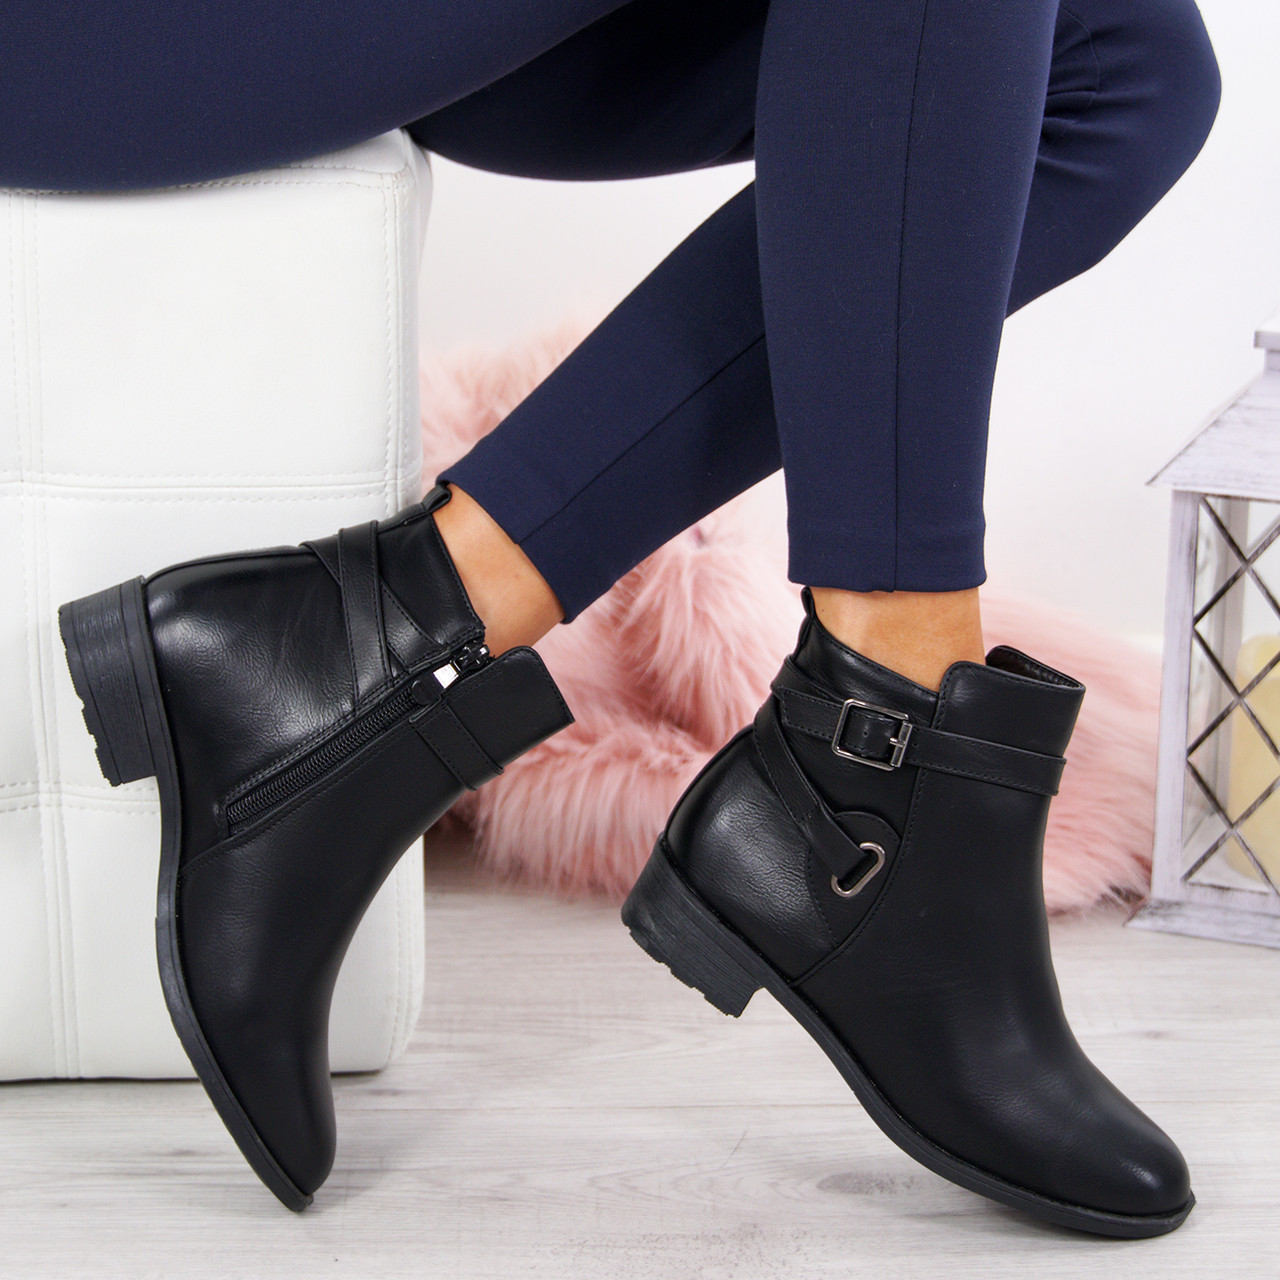 New Womens Ladies Flat Ankle Boots Casual Diamante Side Zip Low Heel Shoes Sizes